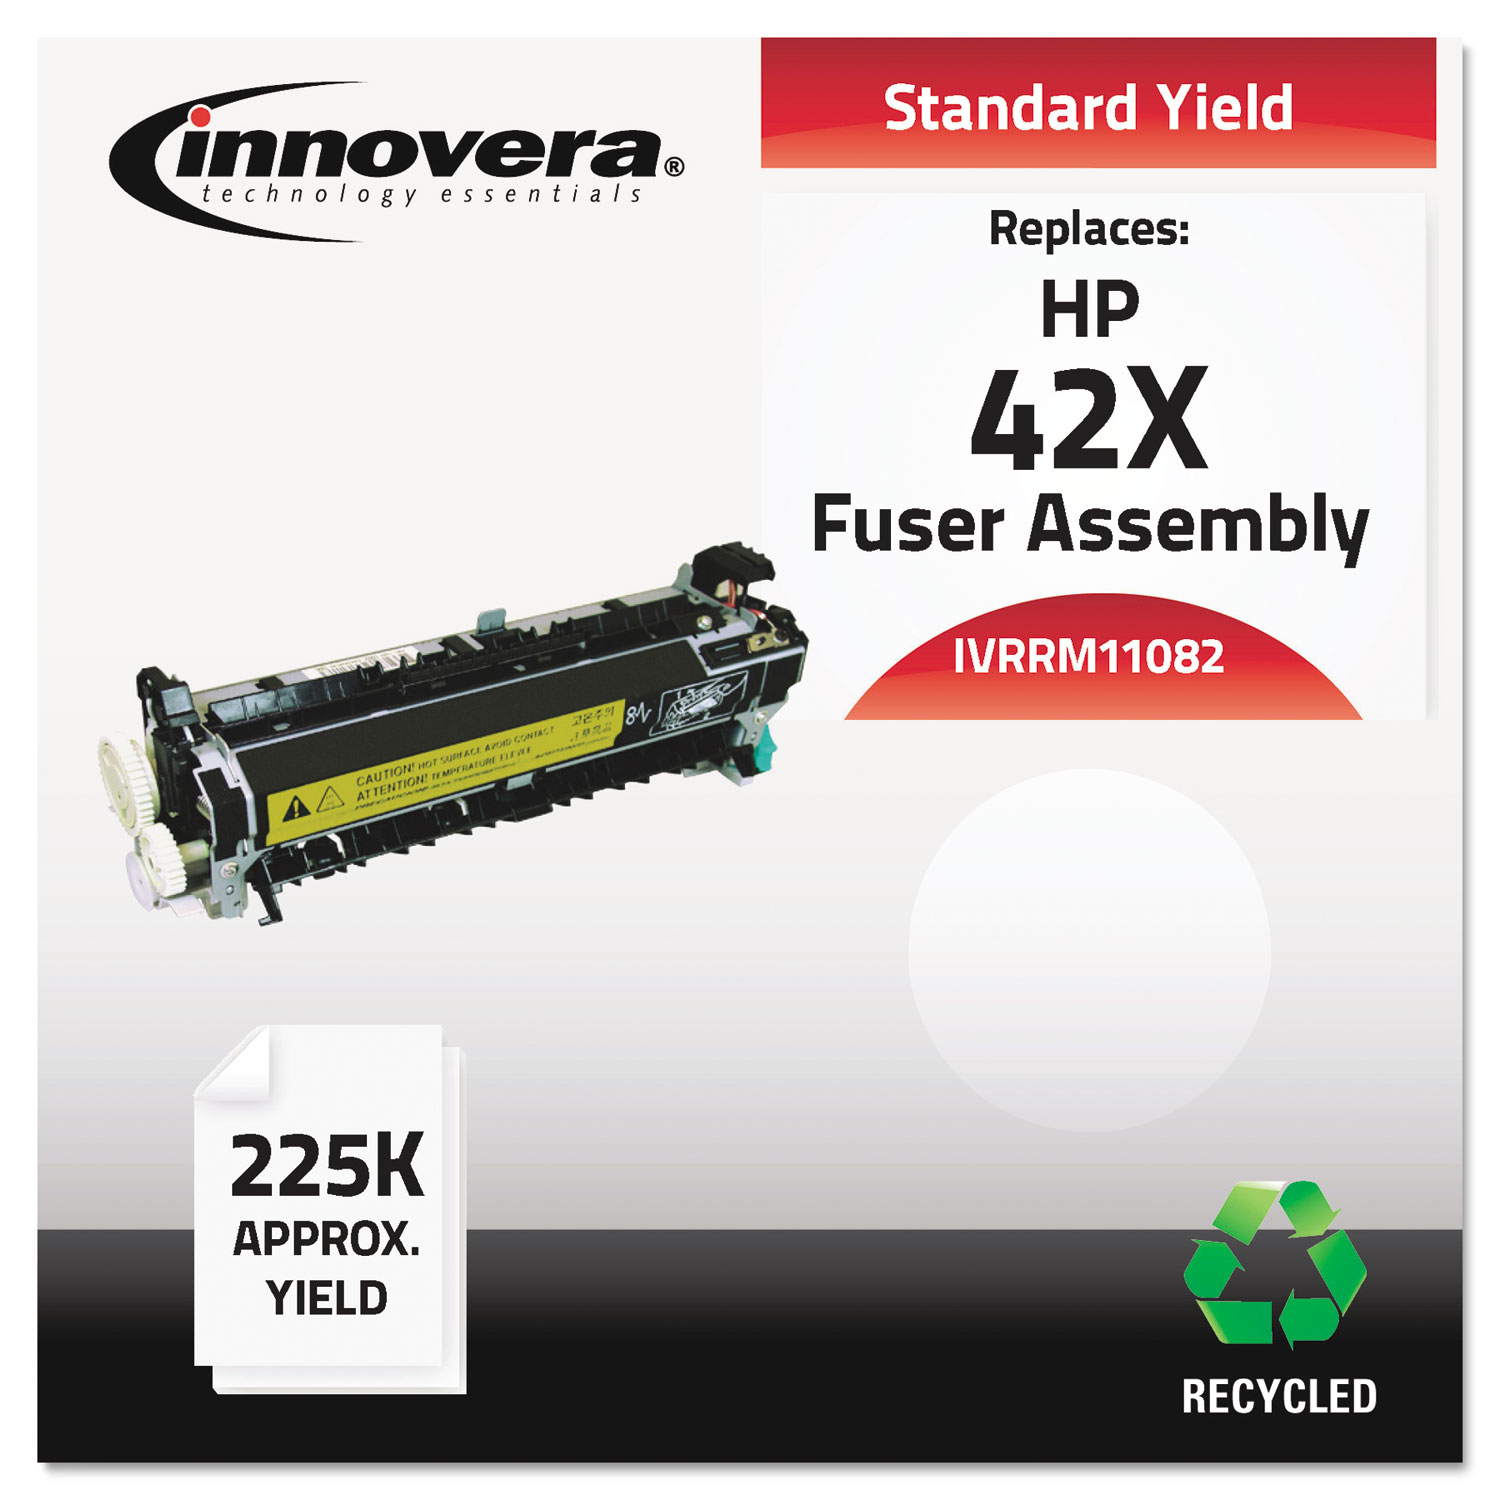 Remanufactured RM1-1082-000 (42X) Fuser, 225,000 Page-Yield IVRRM11082